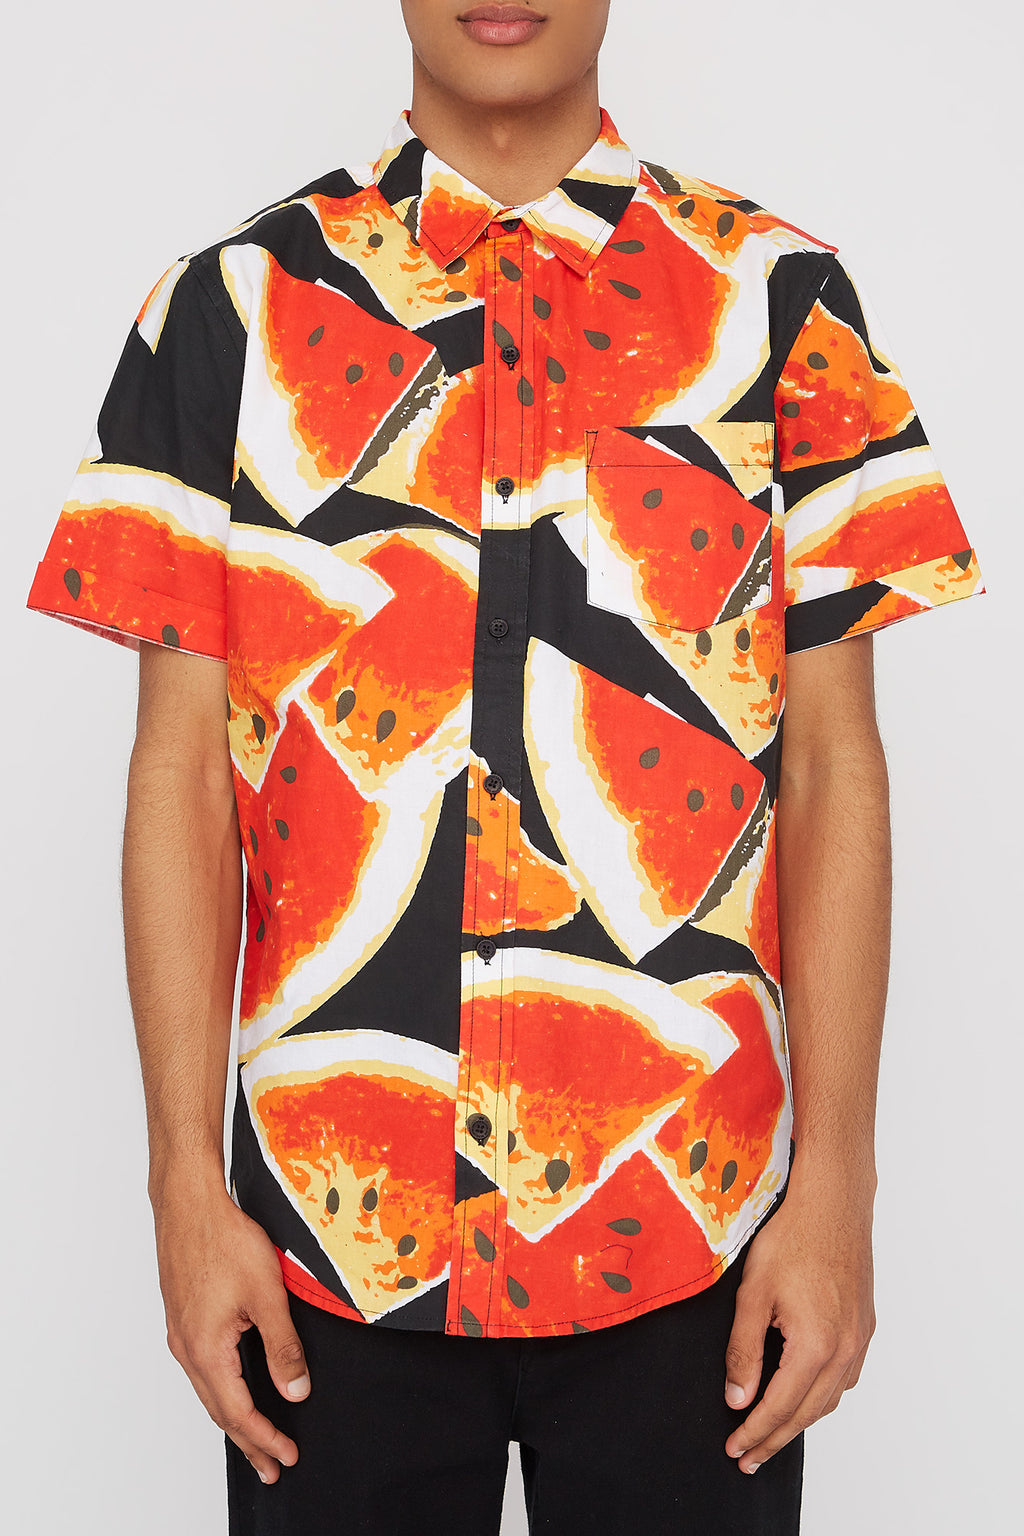 West49 Mens Watermelon Button Up Shirt